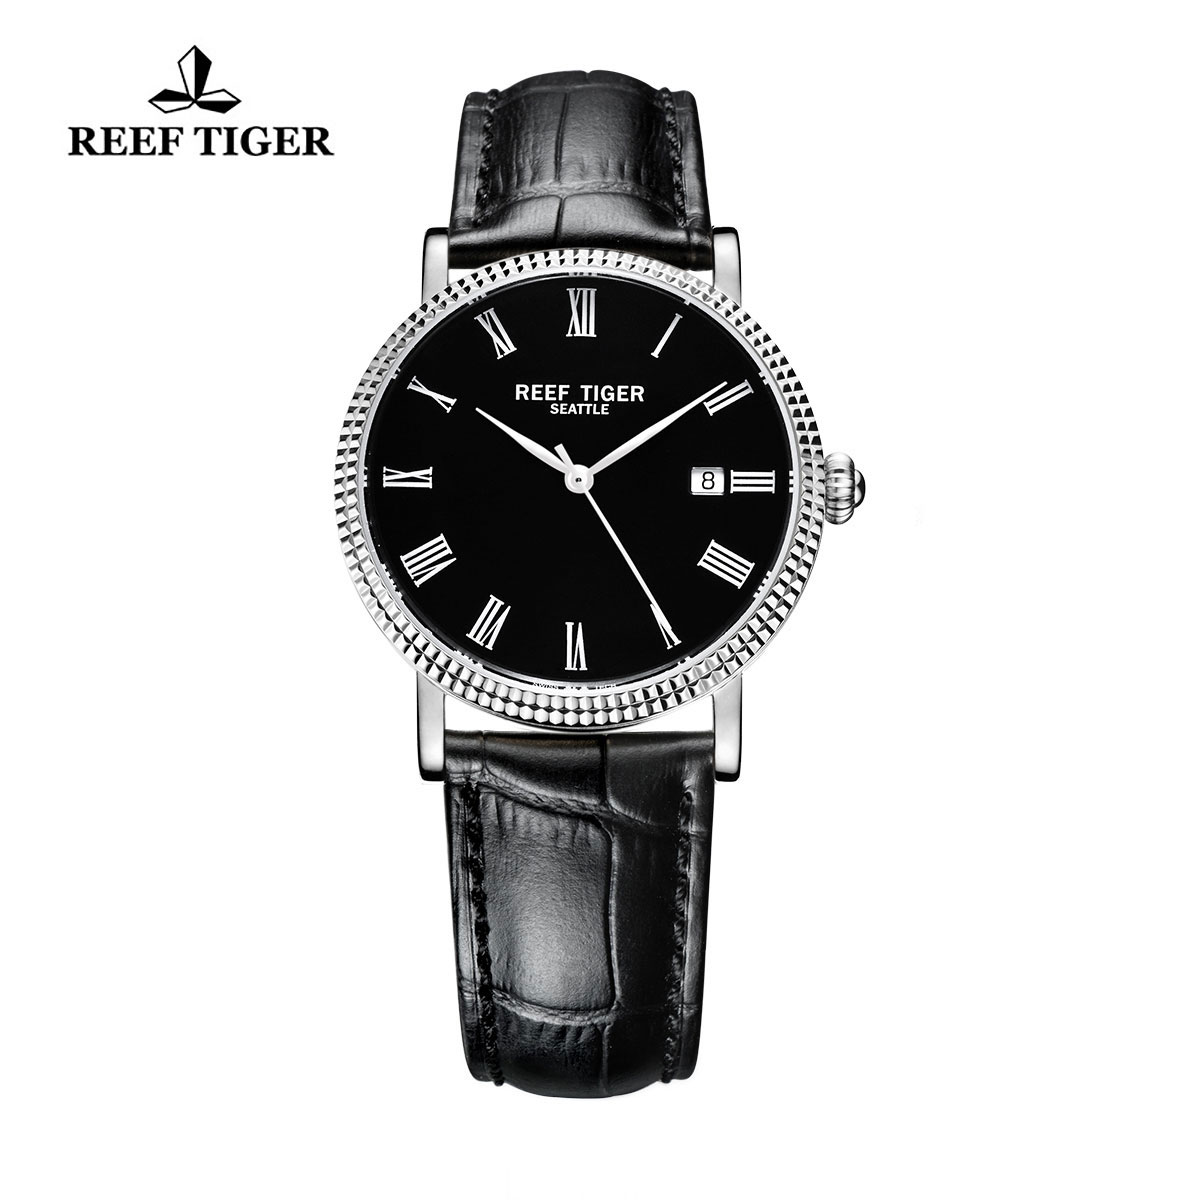 Reef Tiger Dress Watch Steel Black Dial Leather Strap Automatic Watch RGA163-YBB